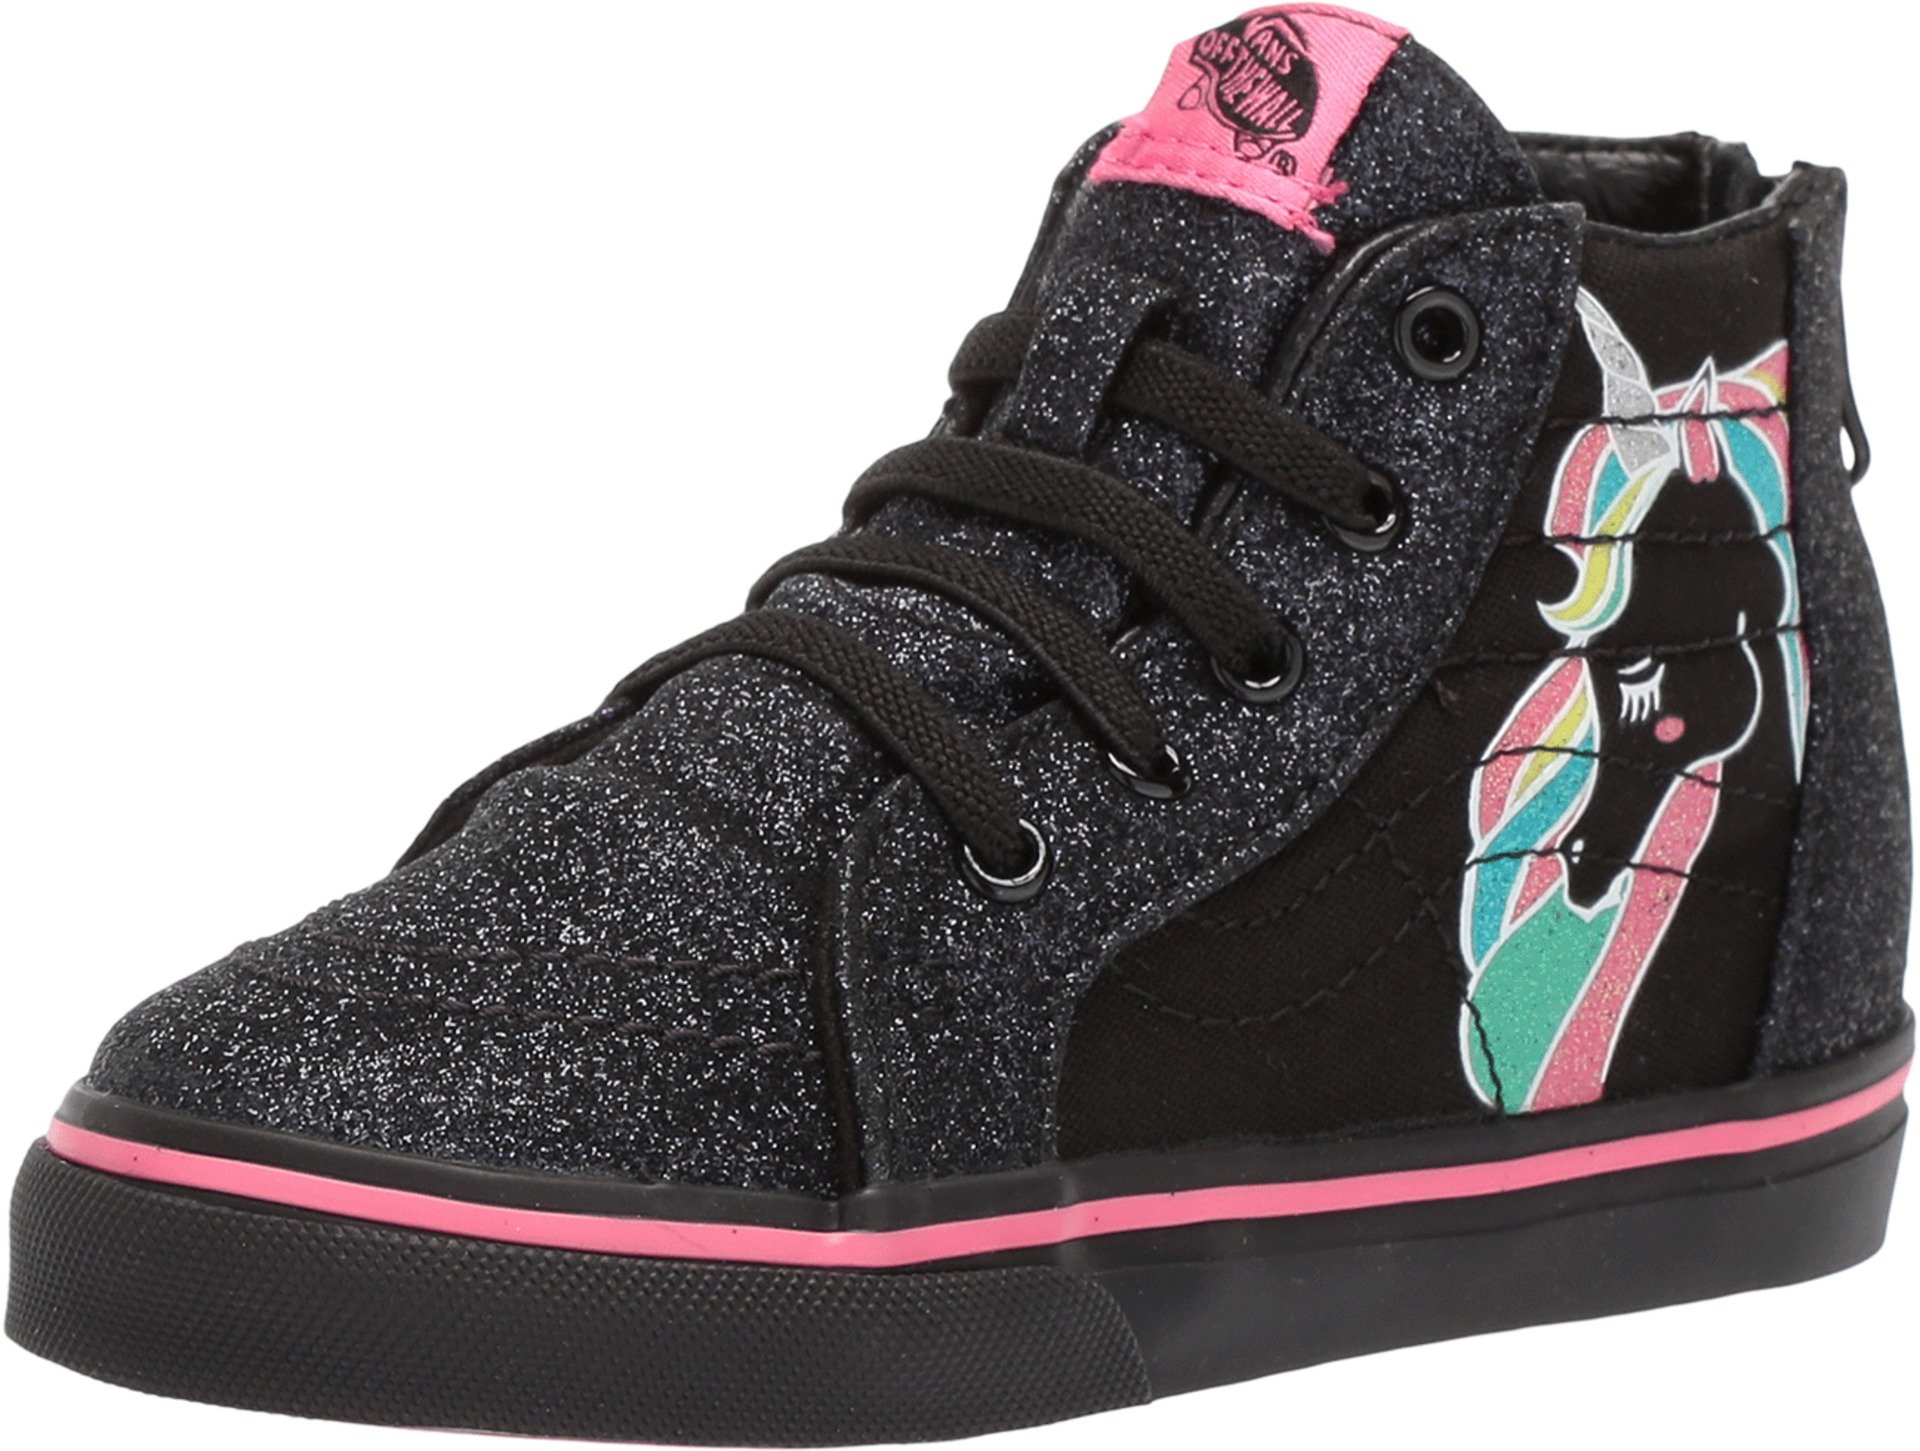 Galleon - Vans Unicorn Sk8-Hi Zip VN0A32R3QR0 (Unicorn) Rainbow Black  Glitter Toddler 6.5 35c0c4e27